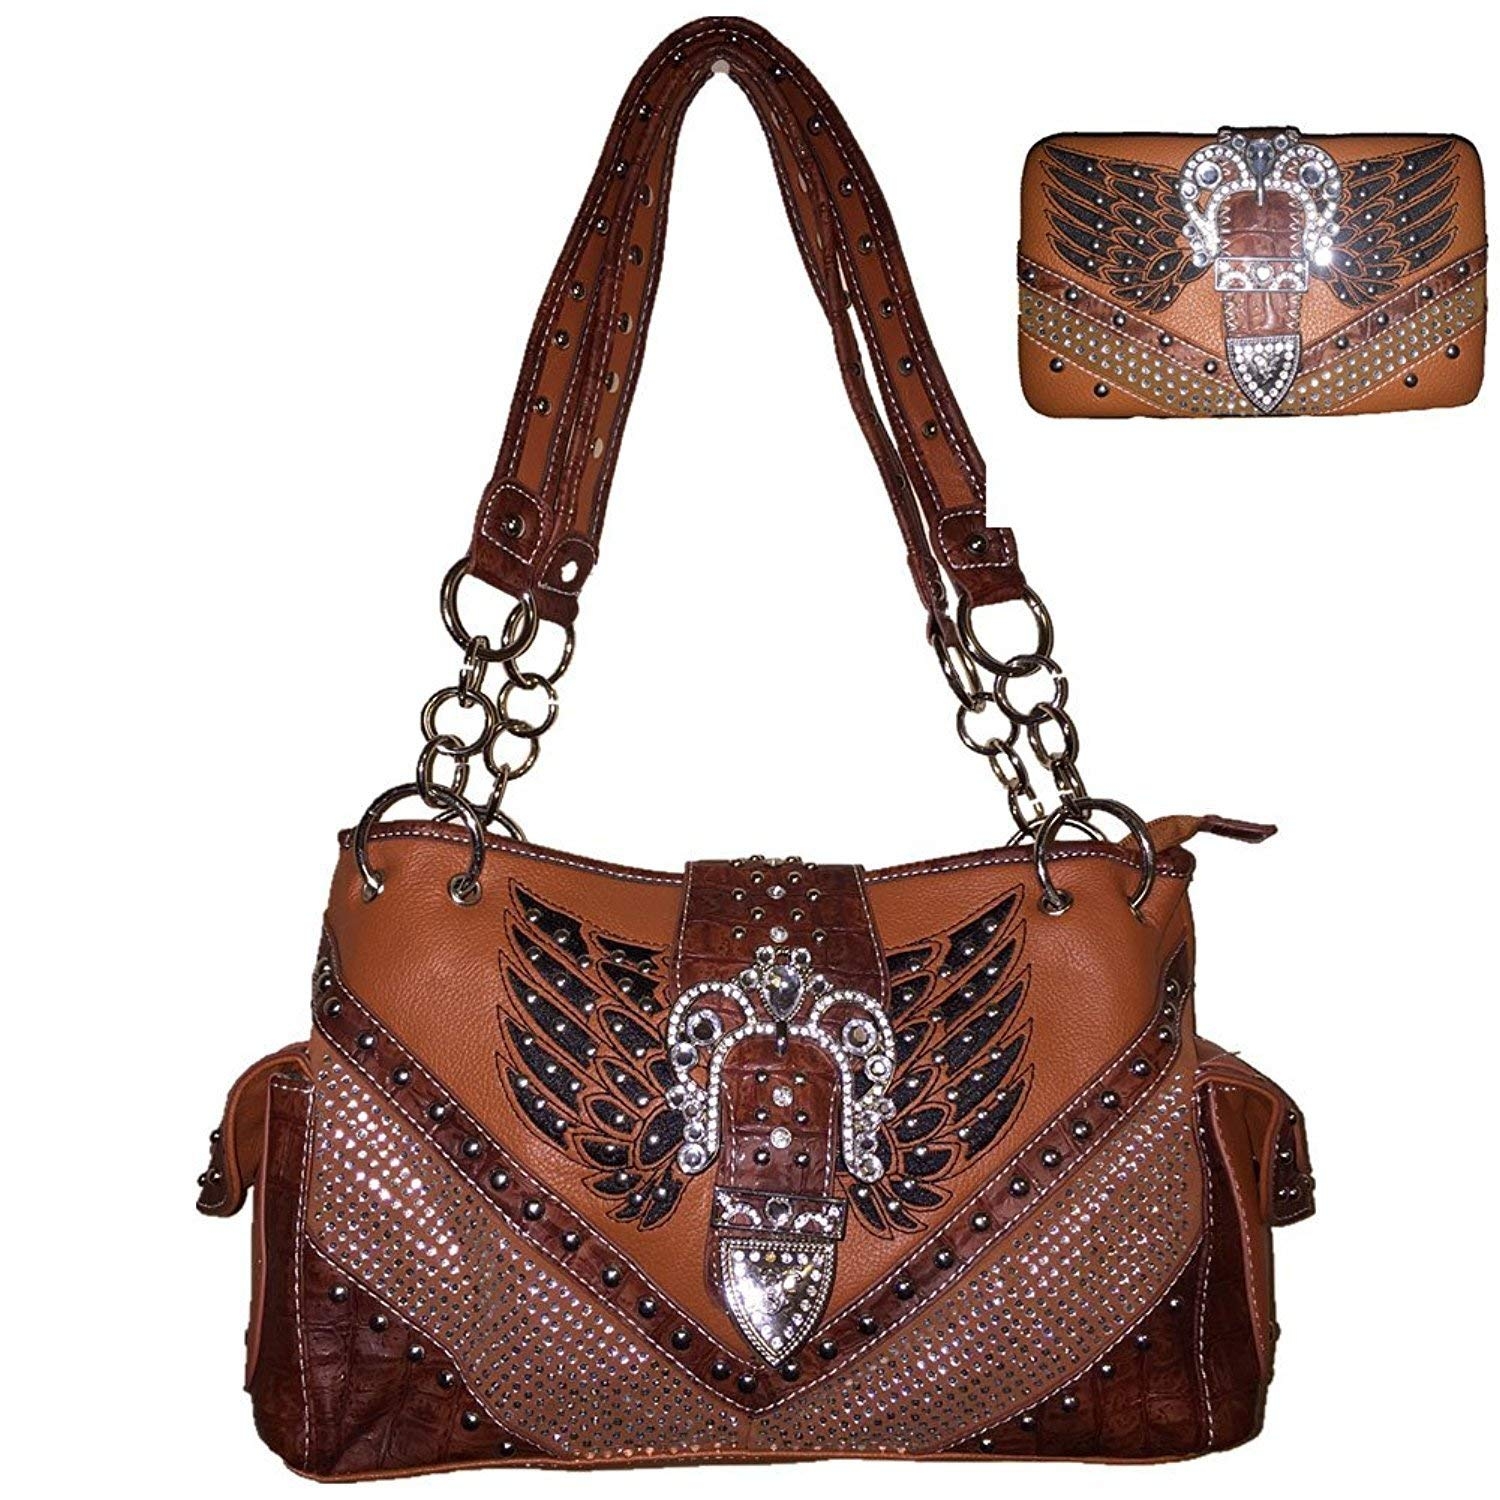 Get Quotations Rhinestone Buckle Angel Wings Shoulder Handbag Purse And Matching Wallet In Tan